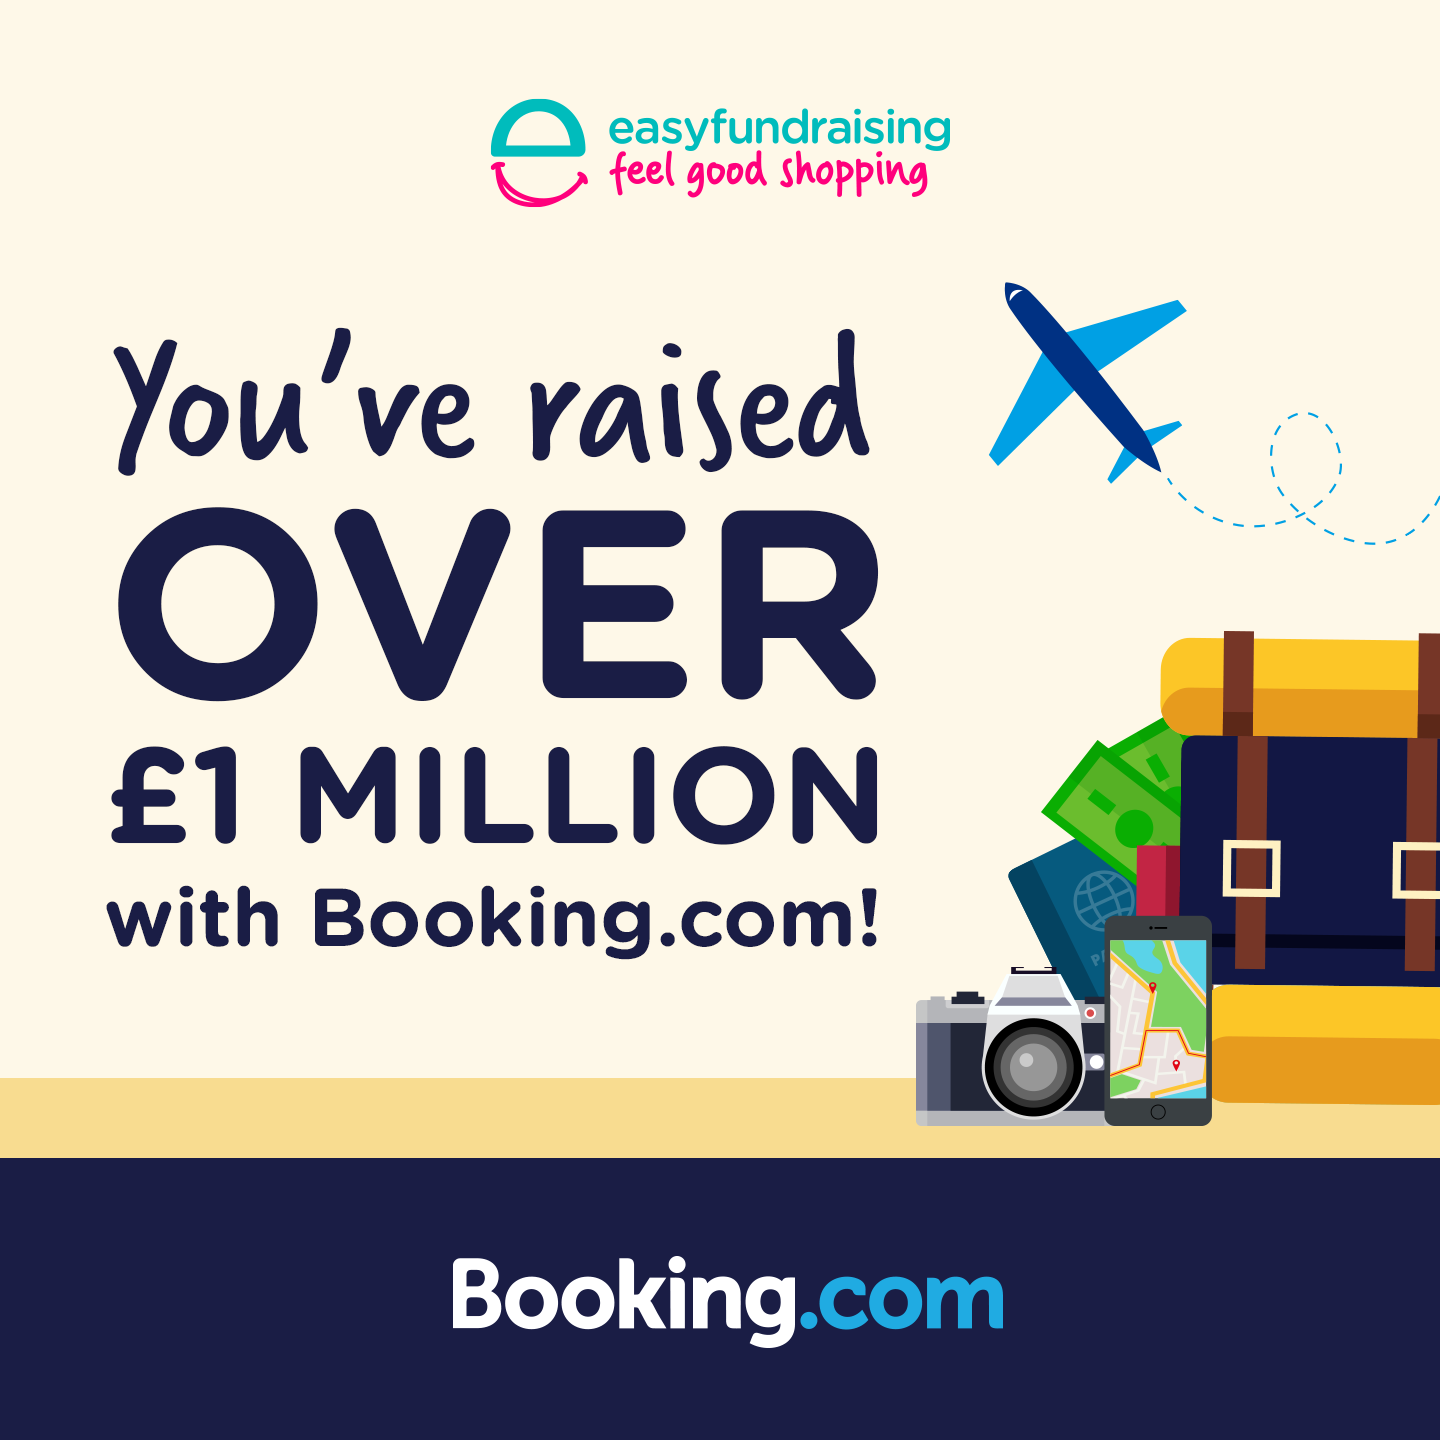 You've raised over £1 million with Booking.com